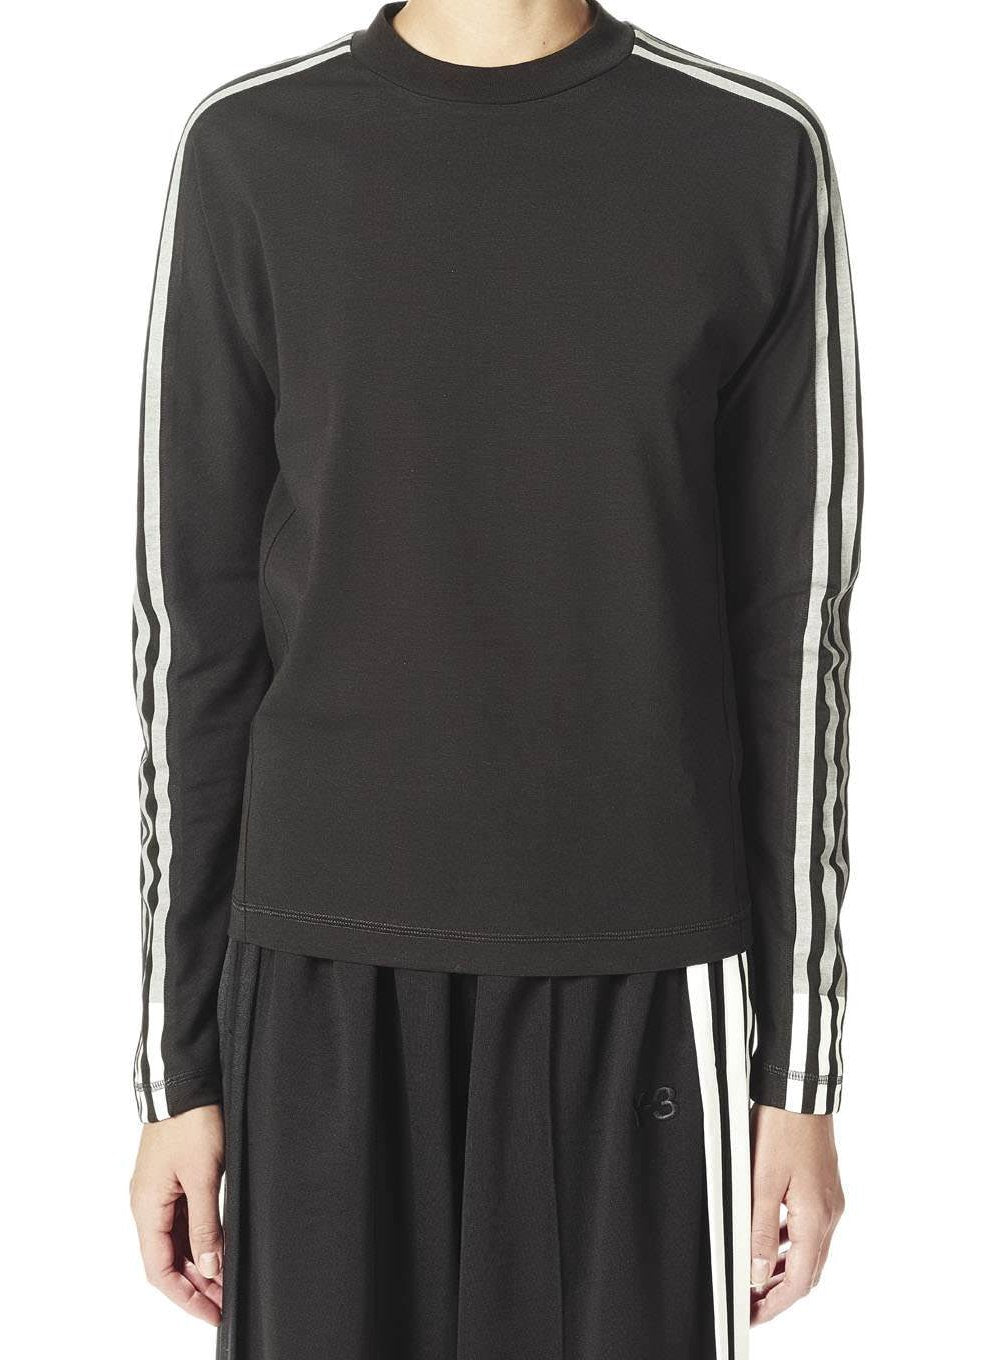 Y-3 | 3 Stripe Long Sleeve Tee Shirt in Black